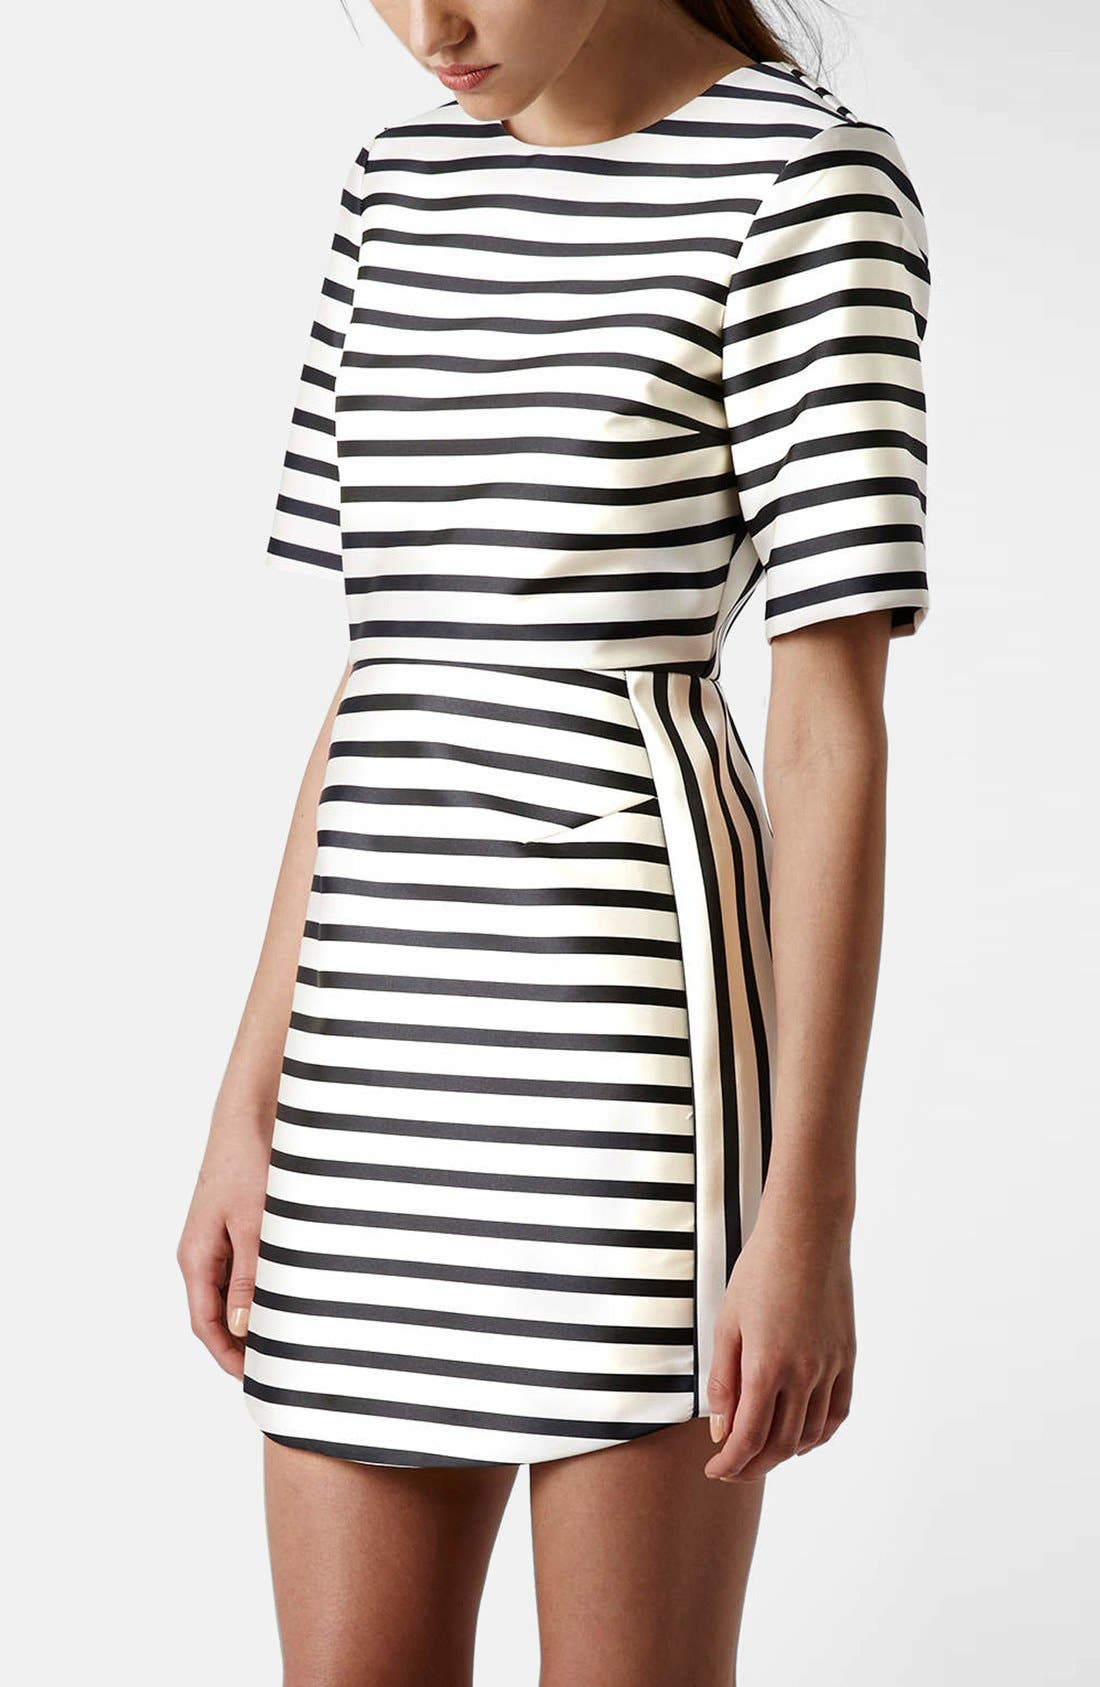 Alternate Image 1 Selected - Topshop Stripe A-Line Dress